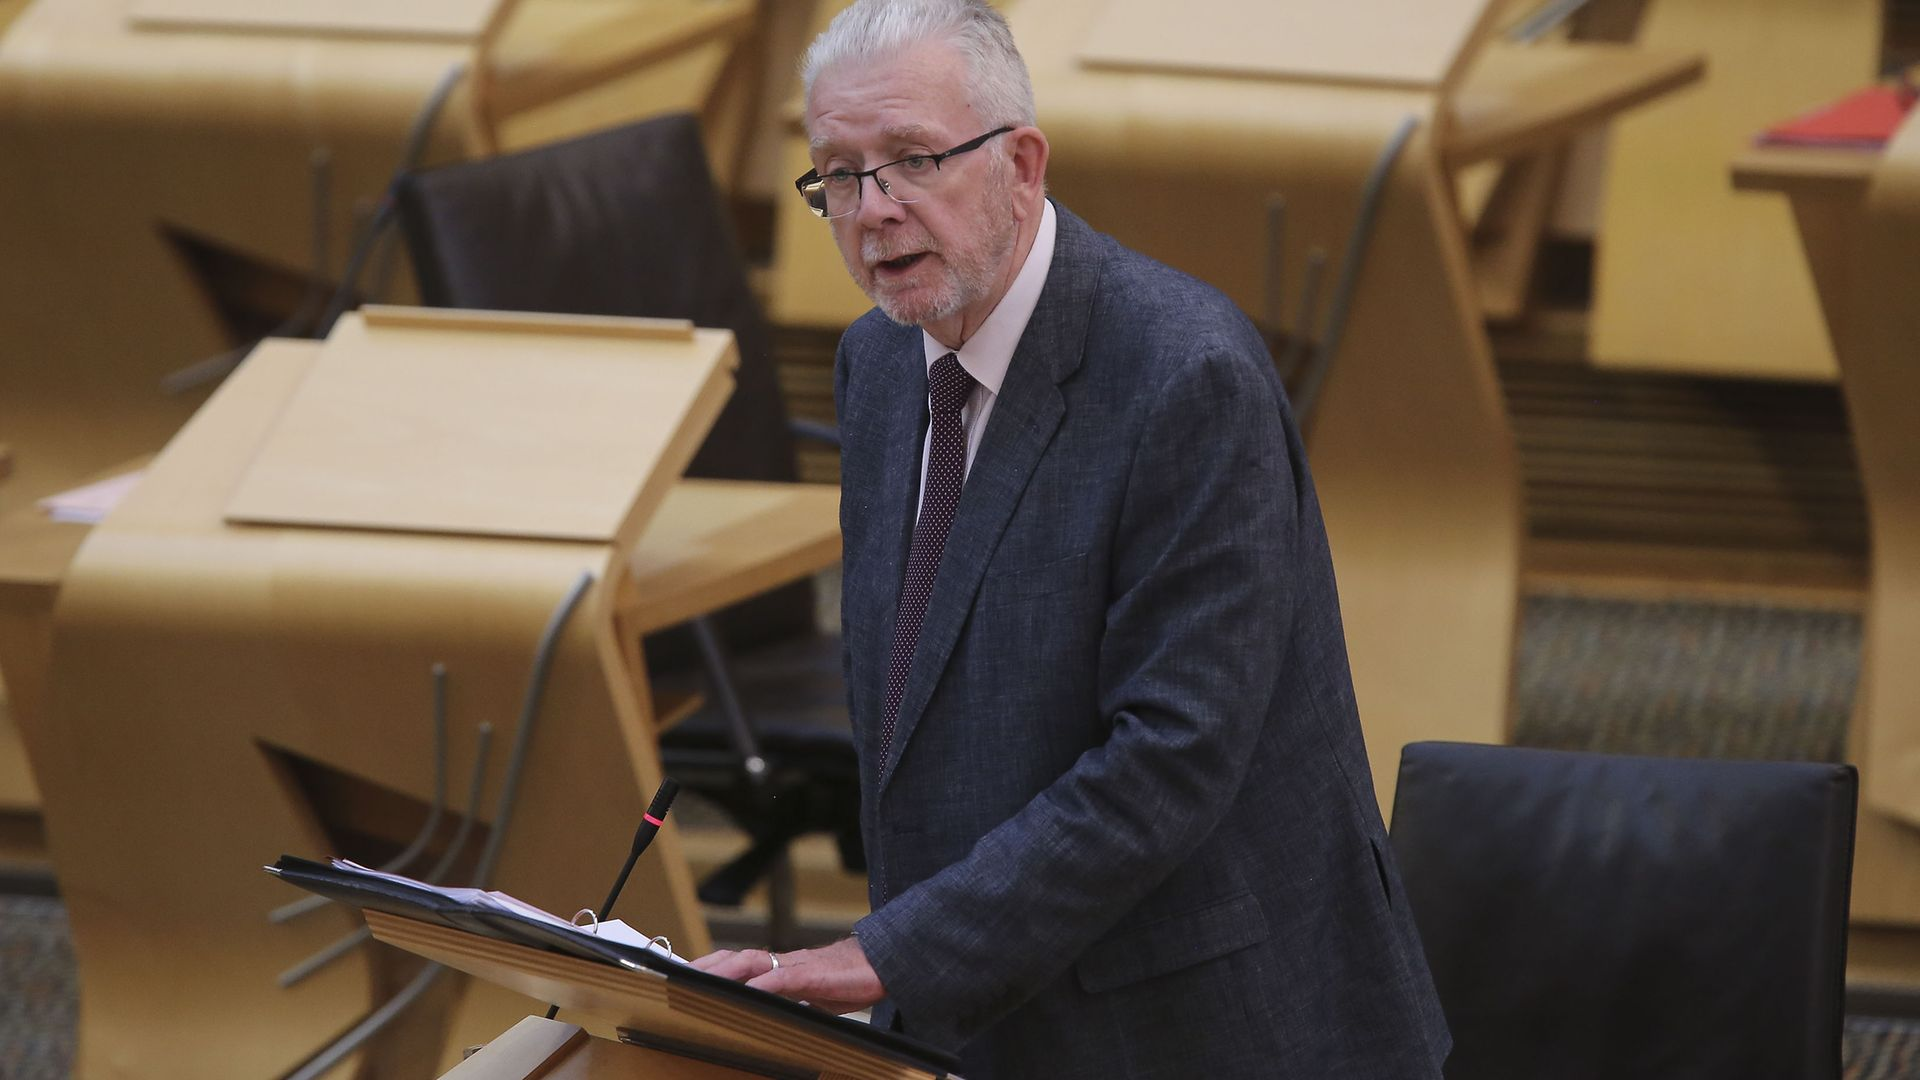 Cabinet Secretary for Government Business and Constitutional Relations Michael Russell giving a ministerial statement at the Scottish Parliament at Holyrood, Edinburgh. - Credit: PA